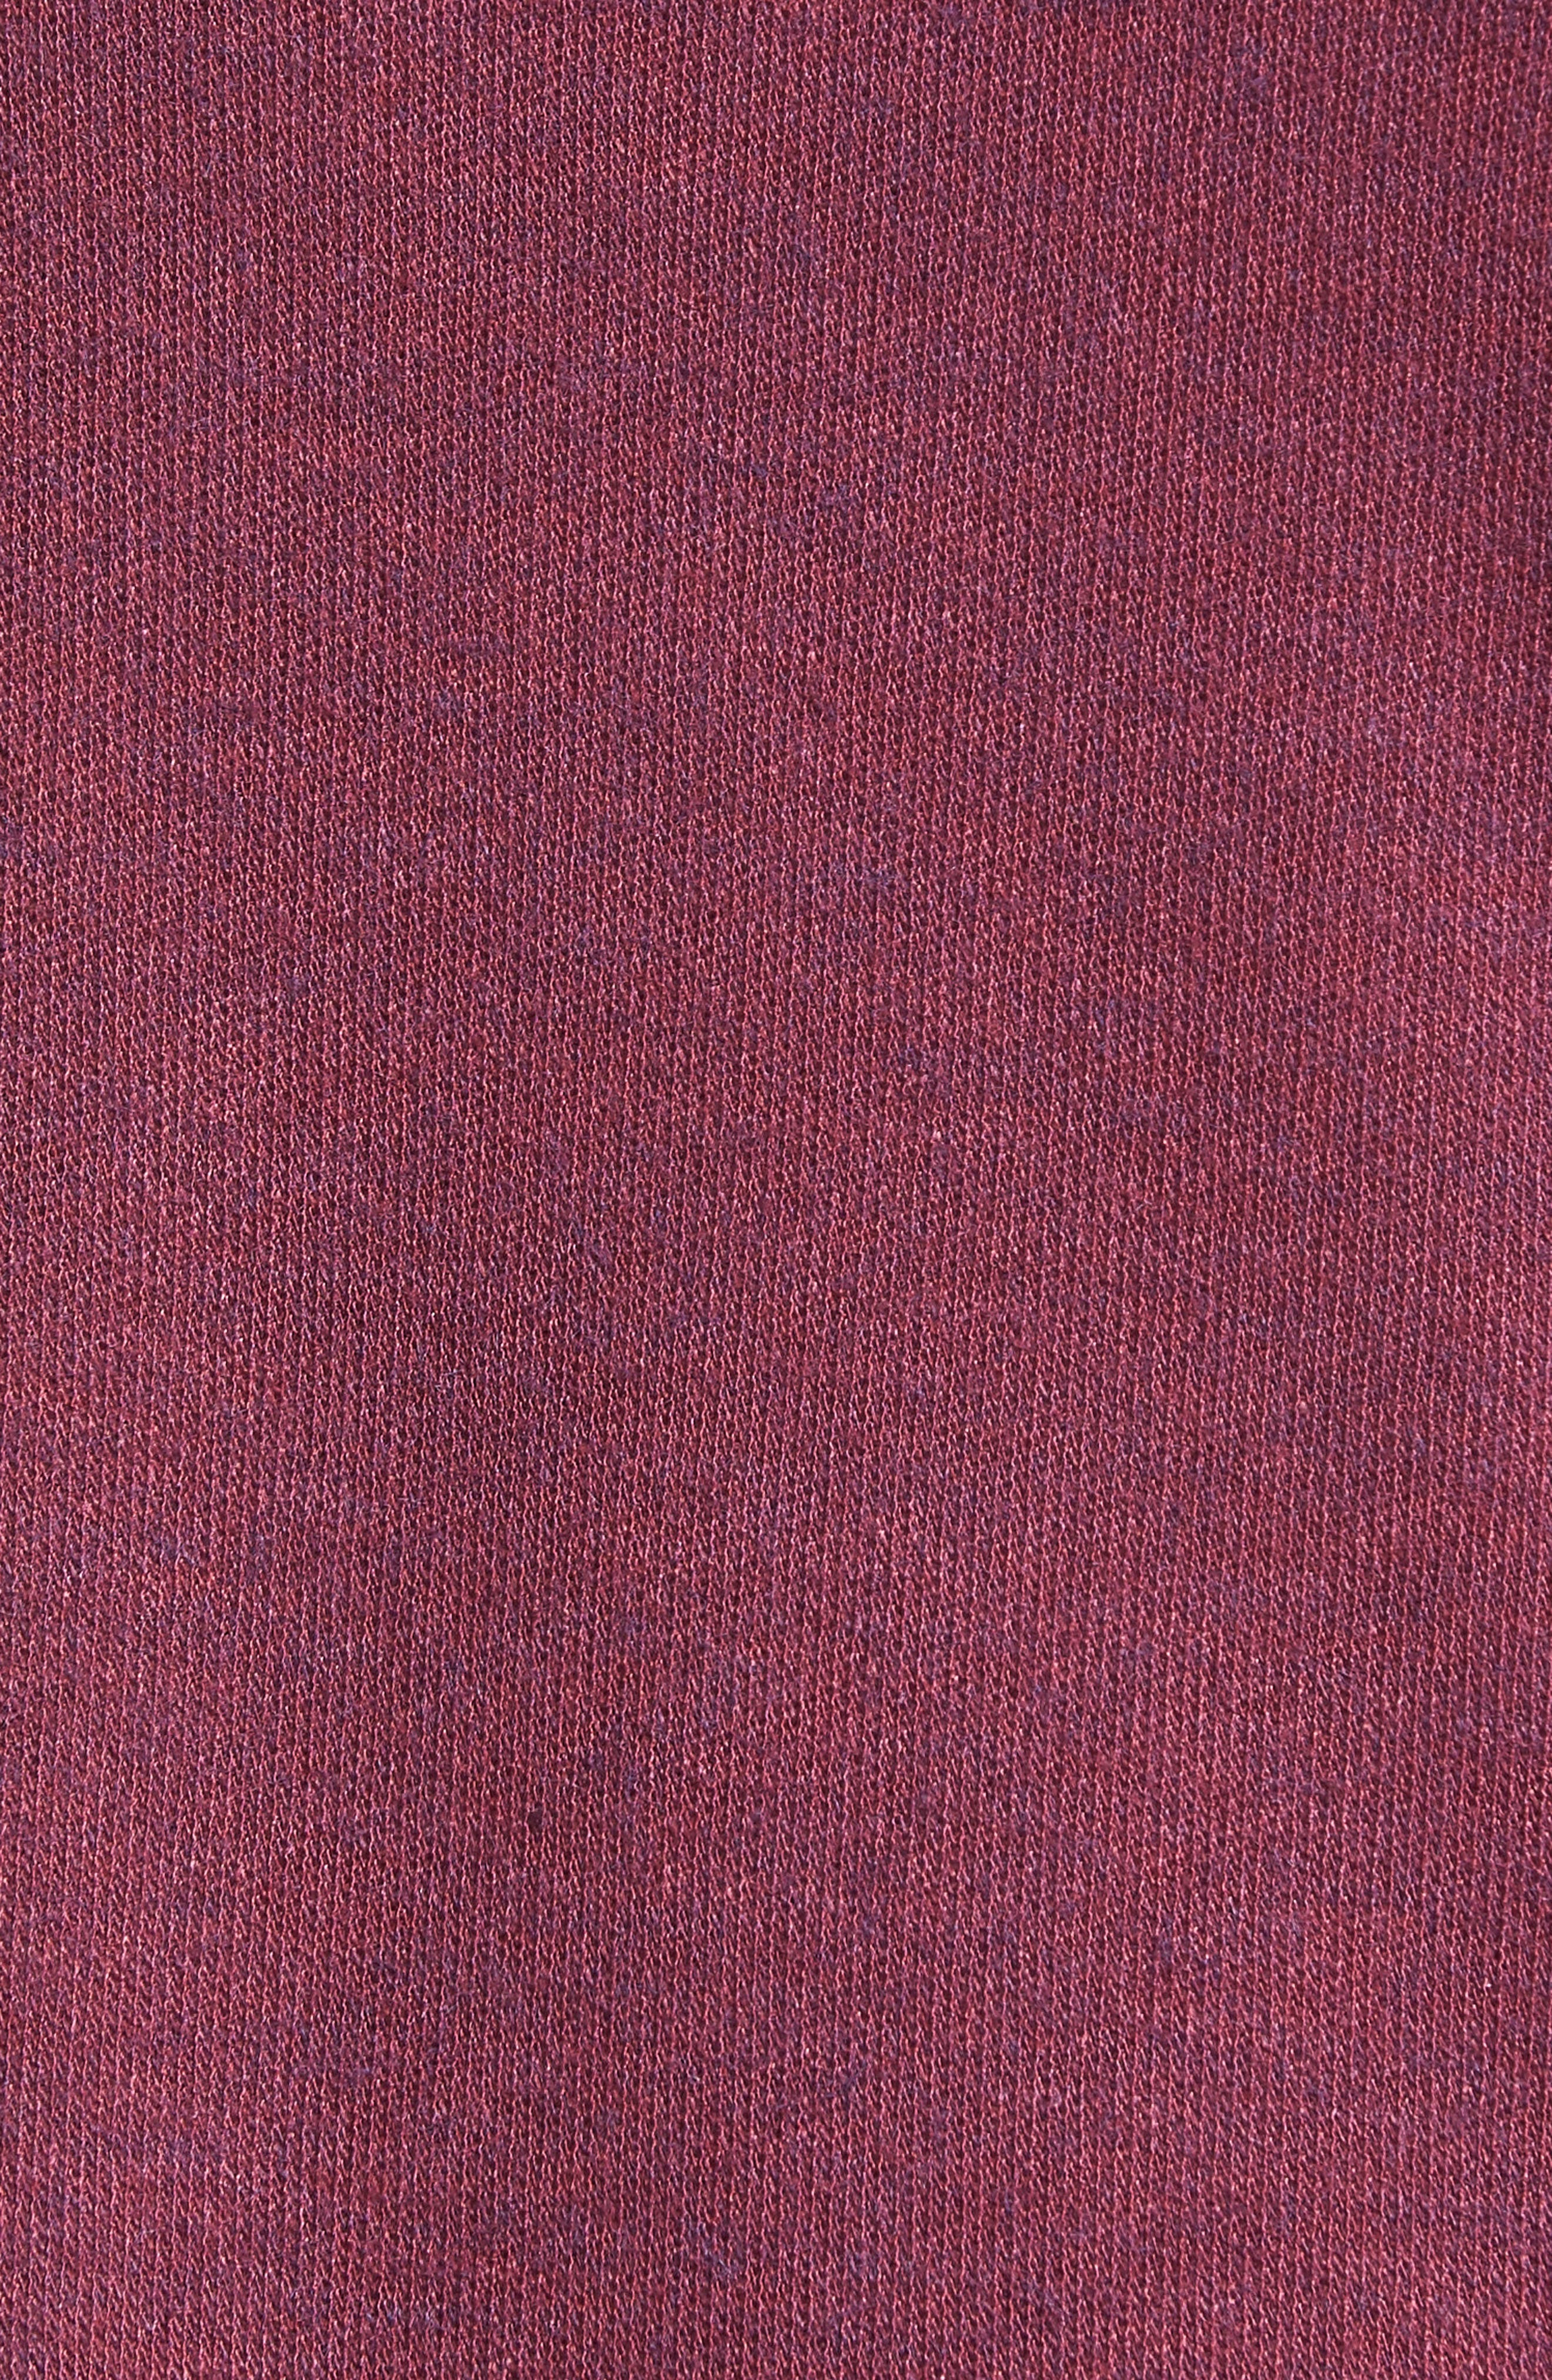 Lace-Up Sweater,                             Alternate thumbnail 5, color,                             Burgundy